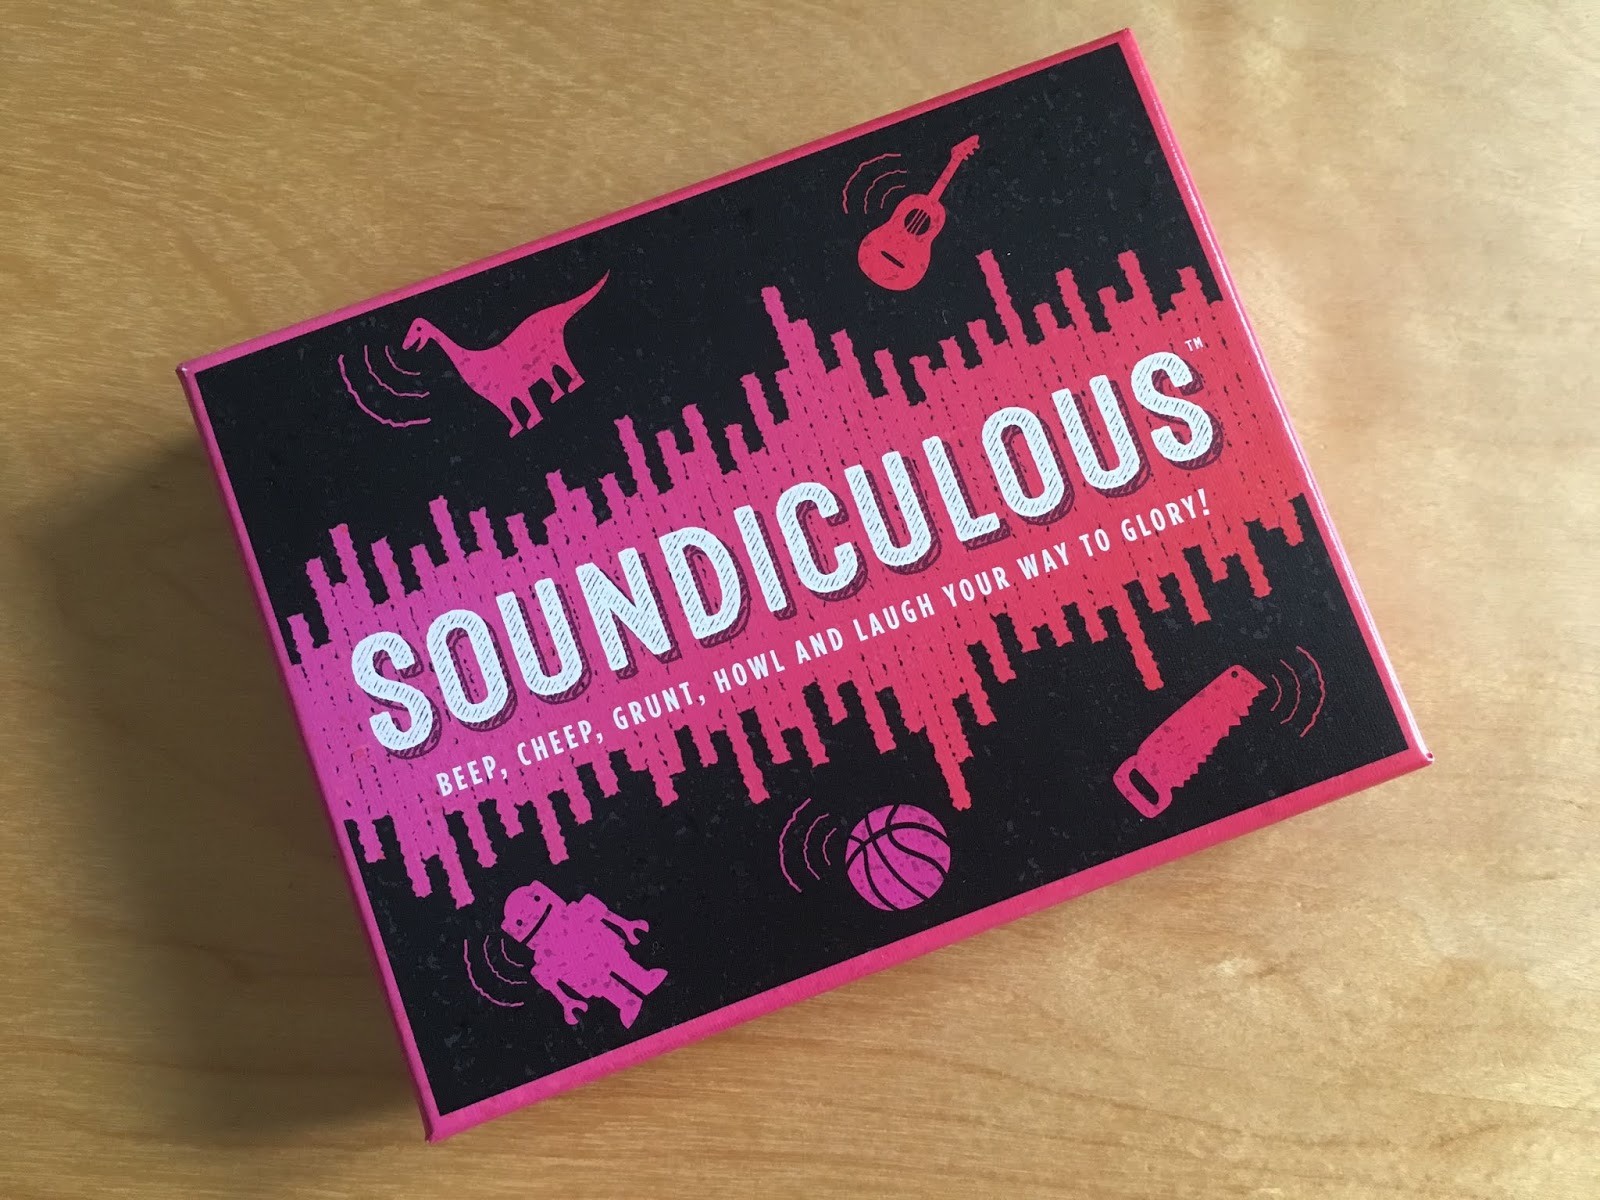 Guess That Sound With Soundiculous!